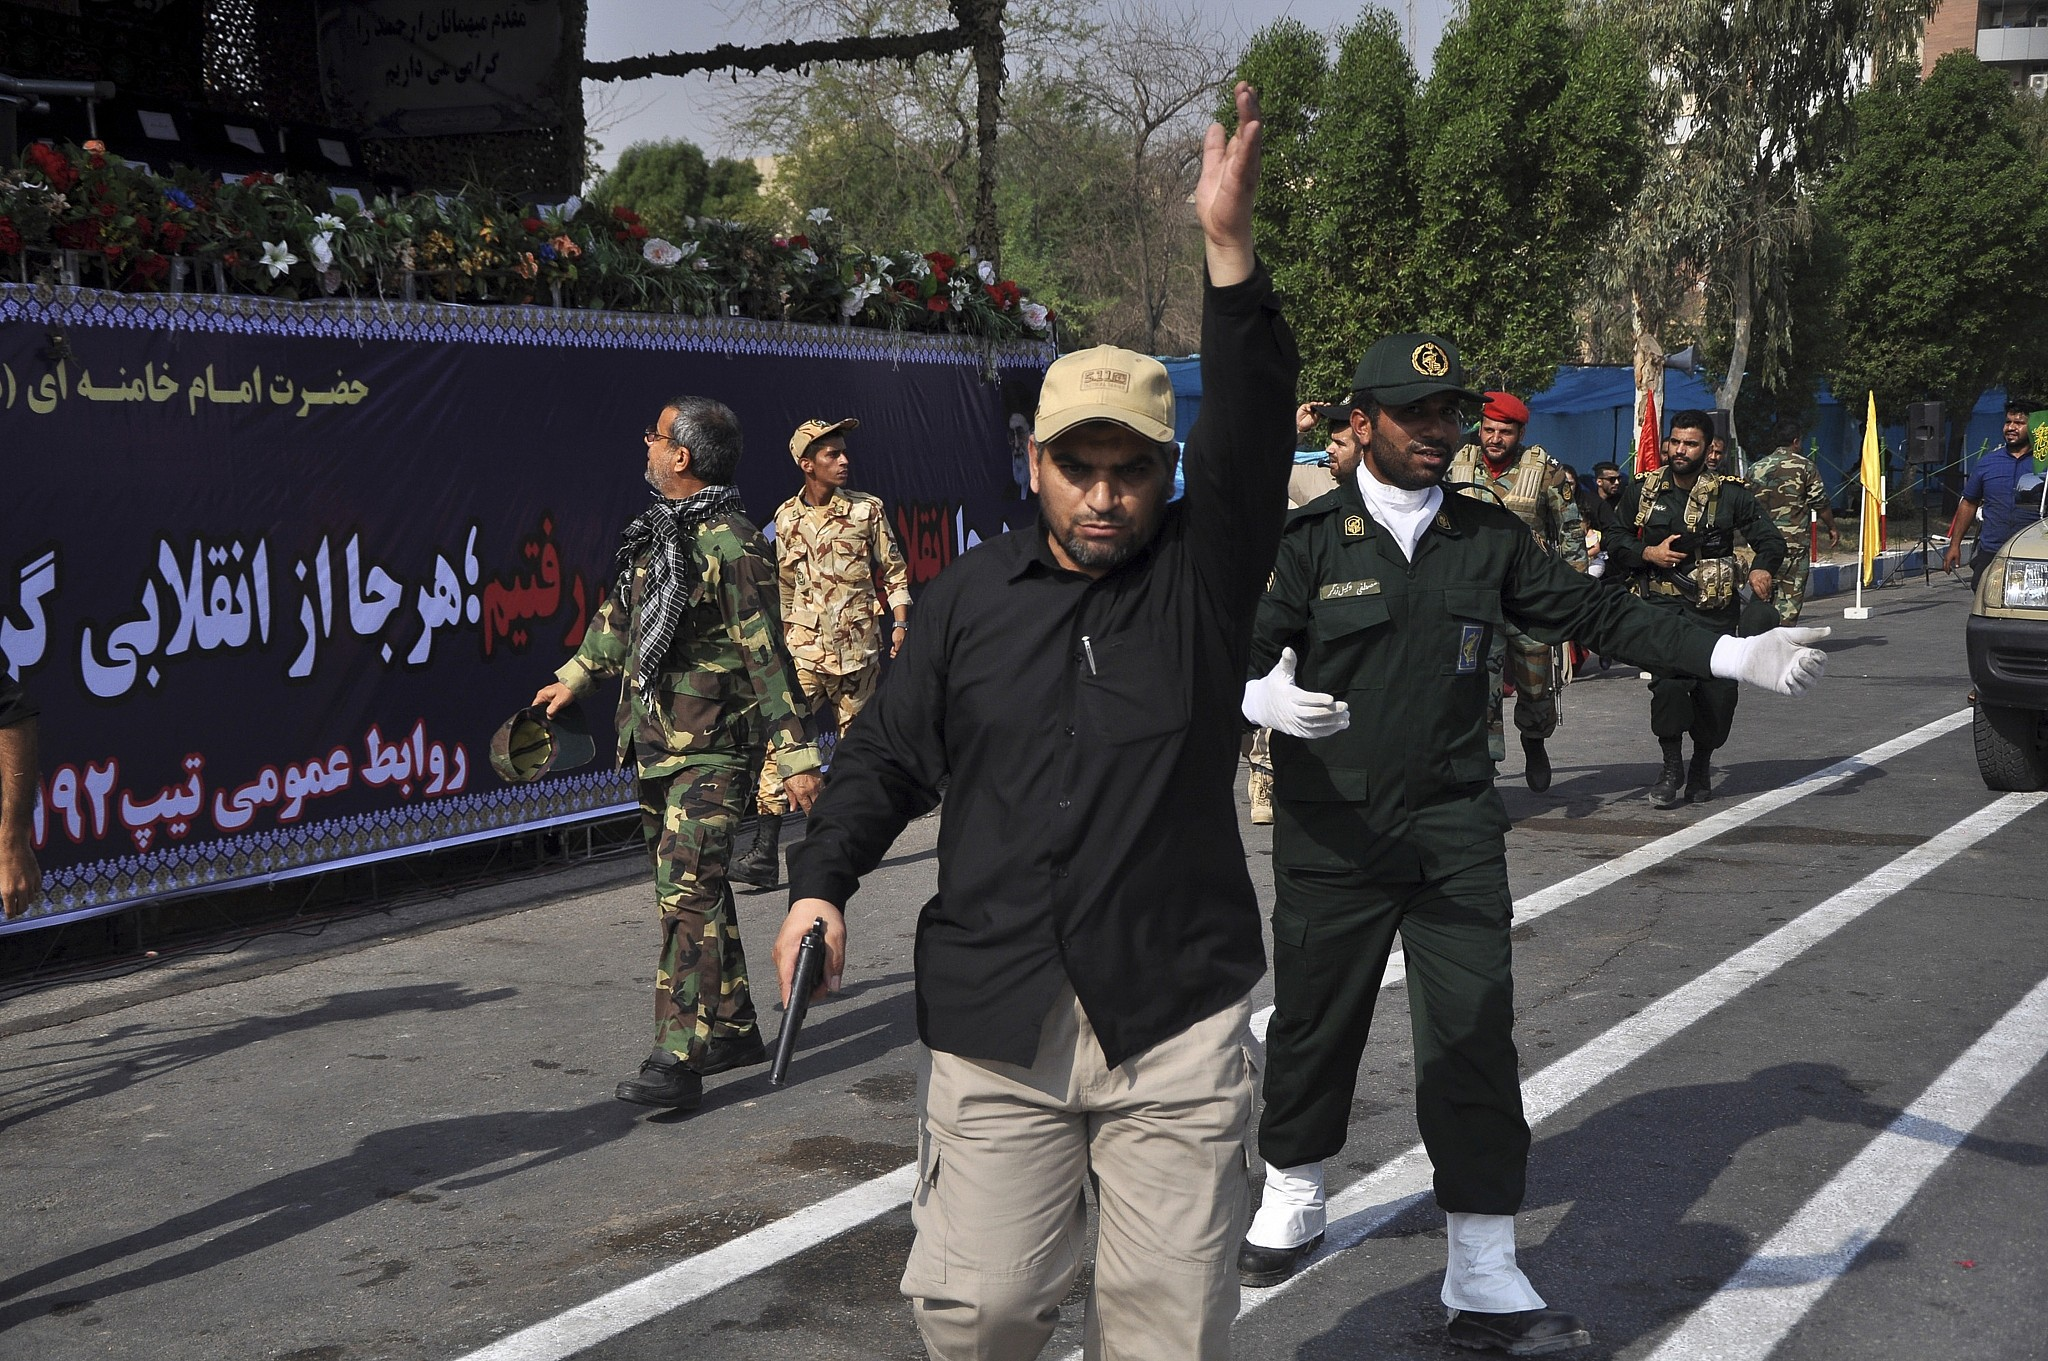 Terror Attack on Iran Military Parade Kills at Least 29, Officials Say